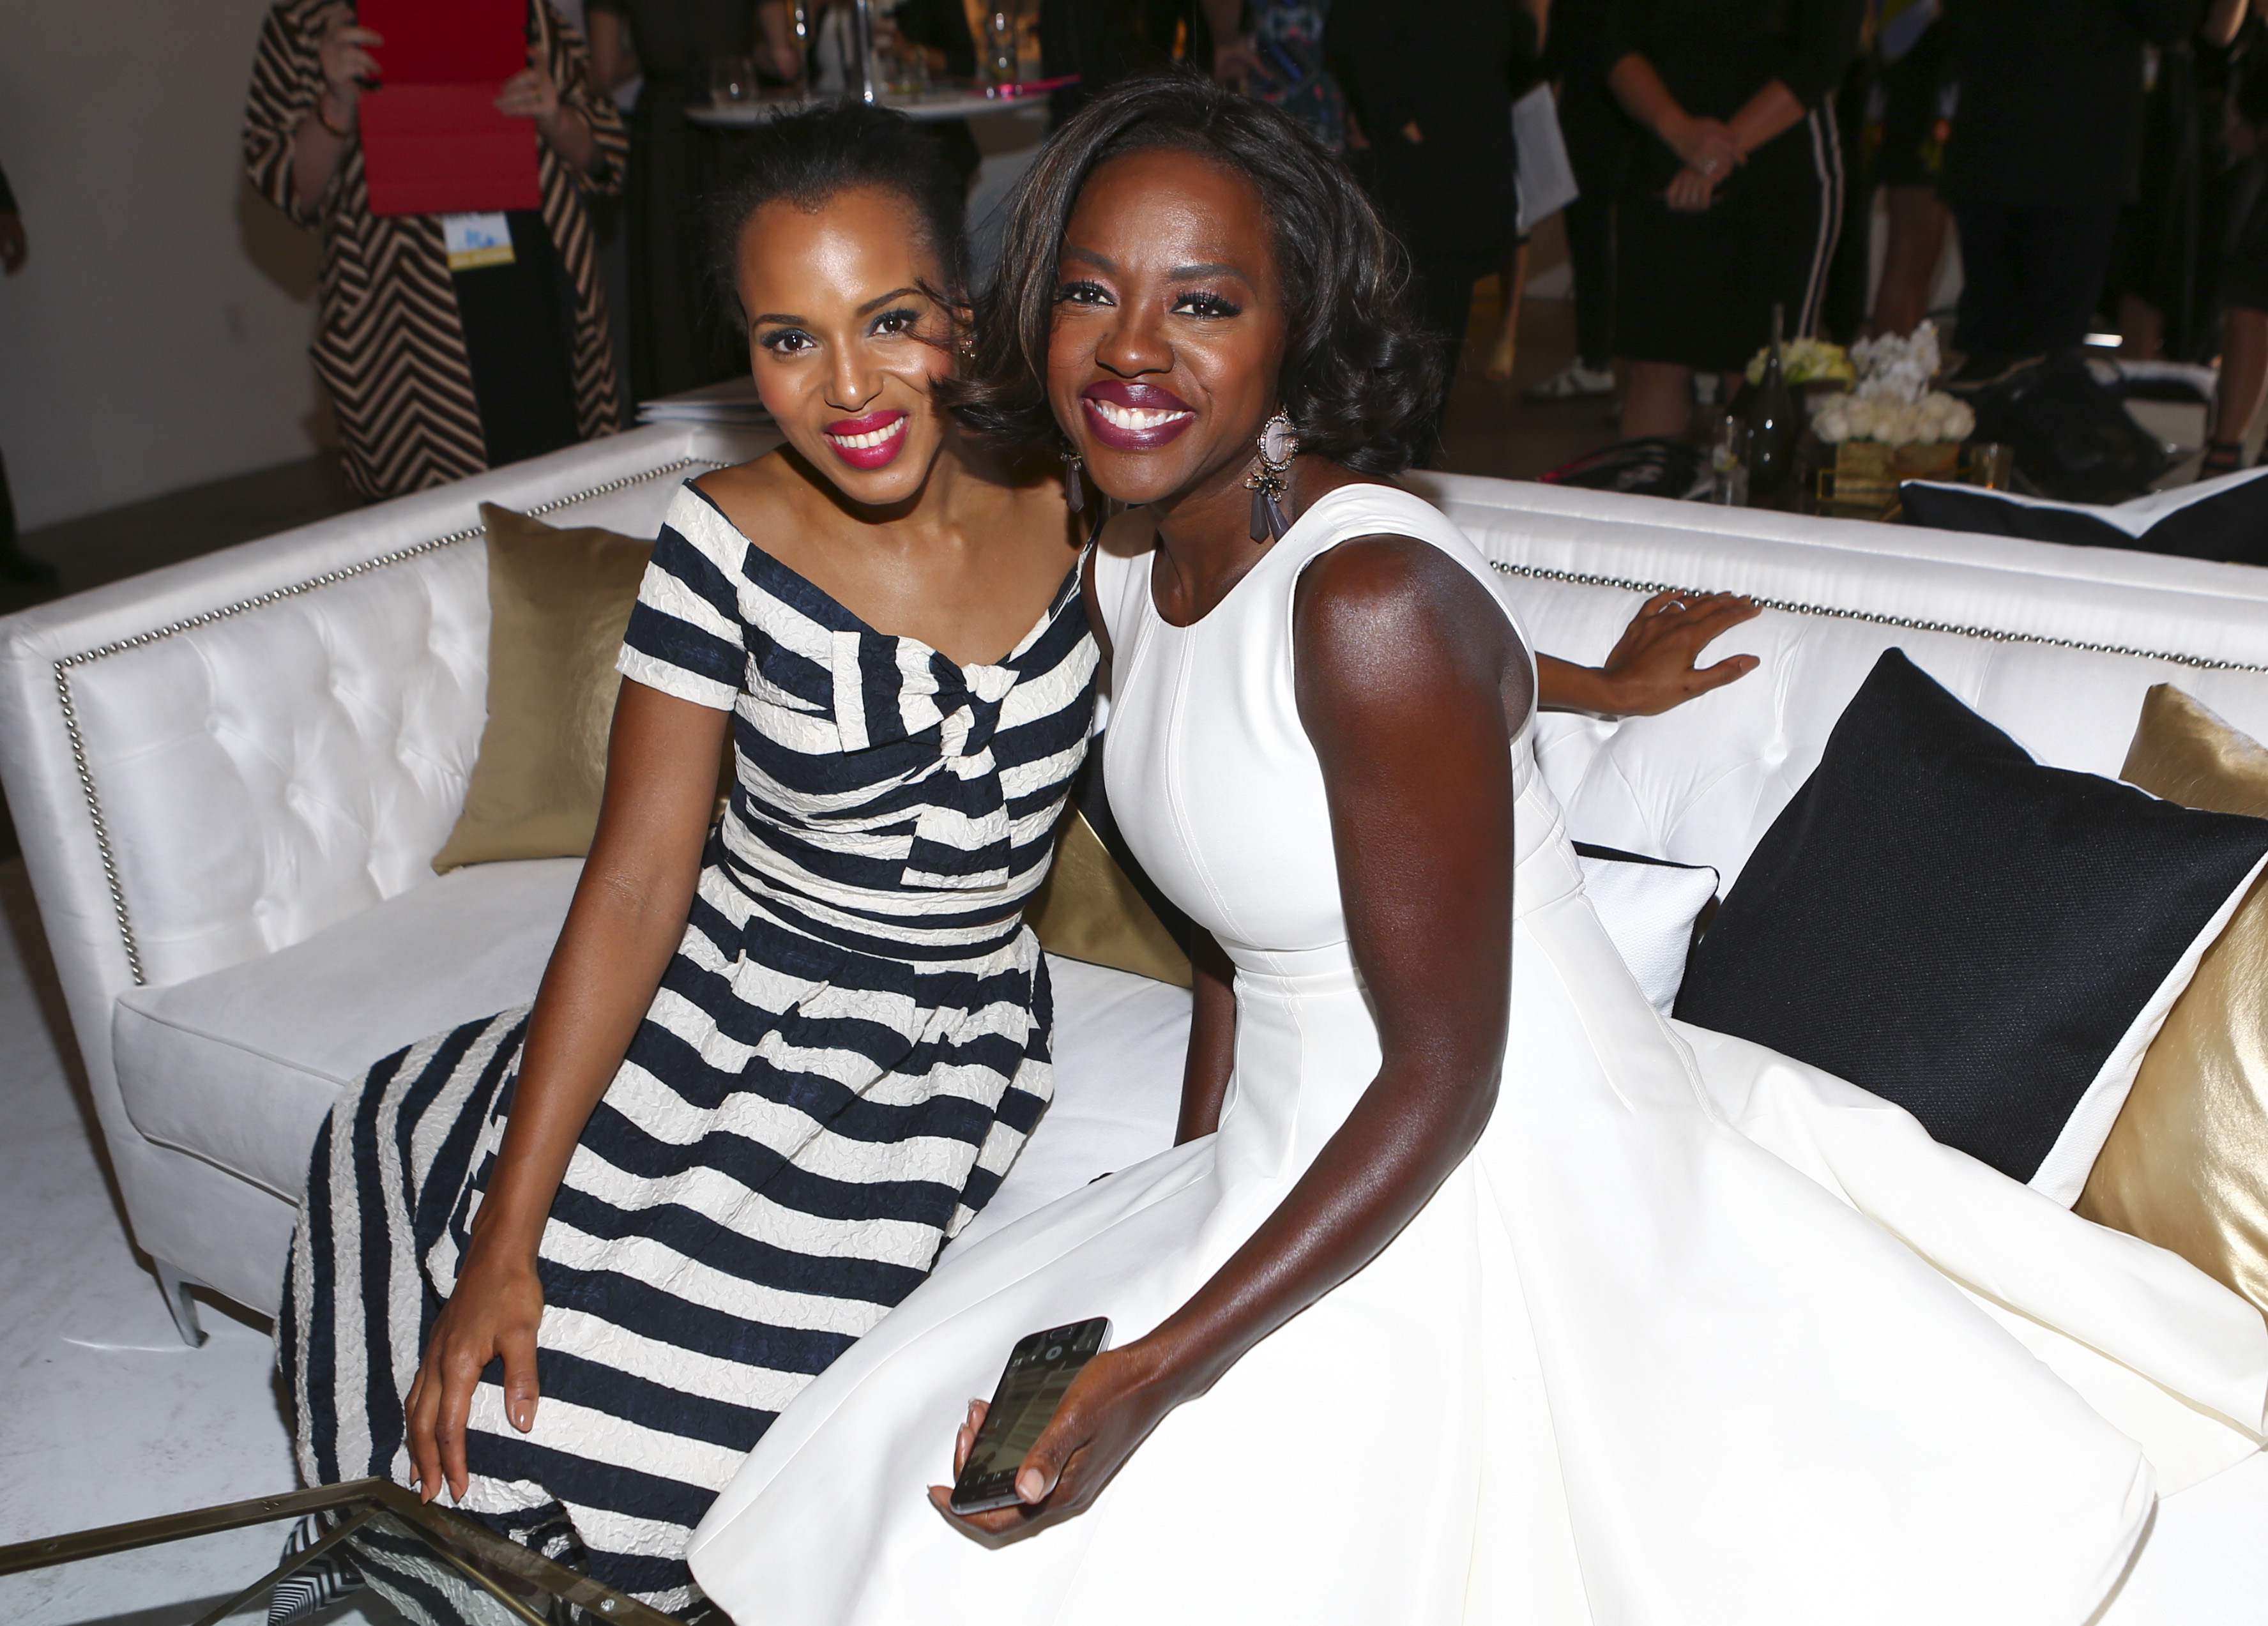 Kerry Washington and Viola Davis